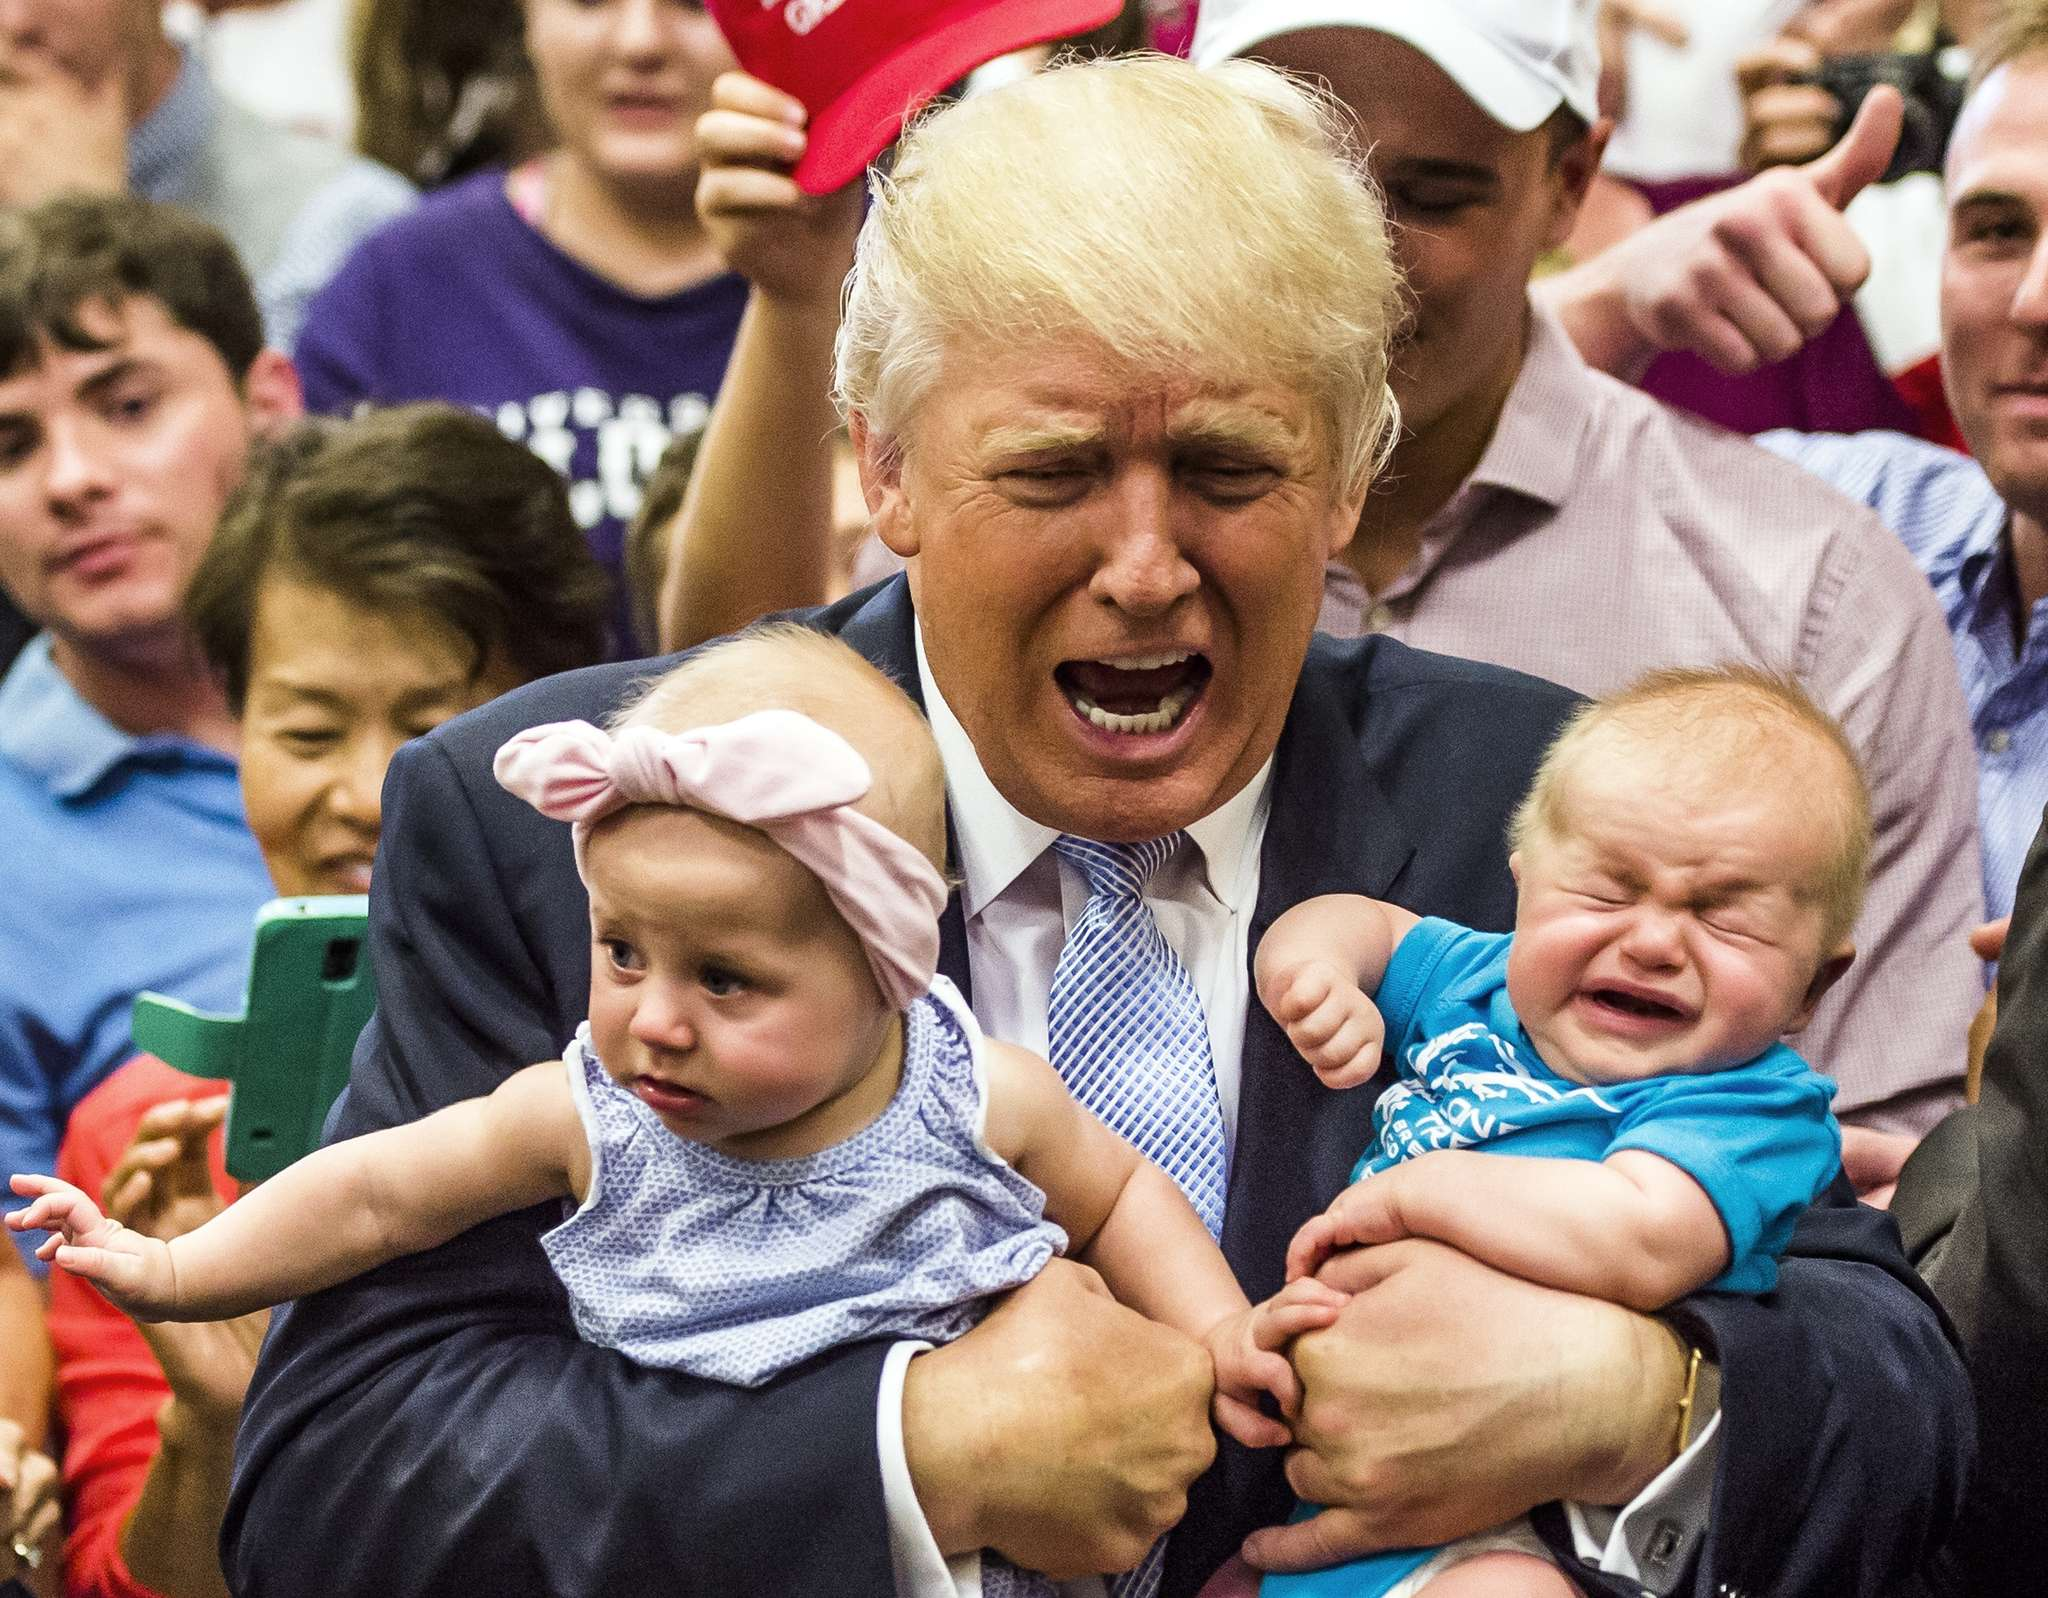 Donald Trump holds baby cousins Evelyn Kate Keane, 6 months, and Kellen Campbell, 3 months, during a campaign stop Friday in Colorado Springs, Colo.